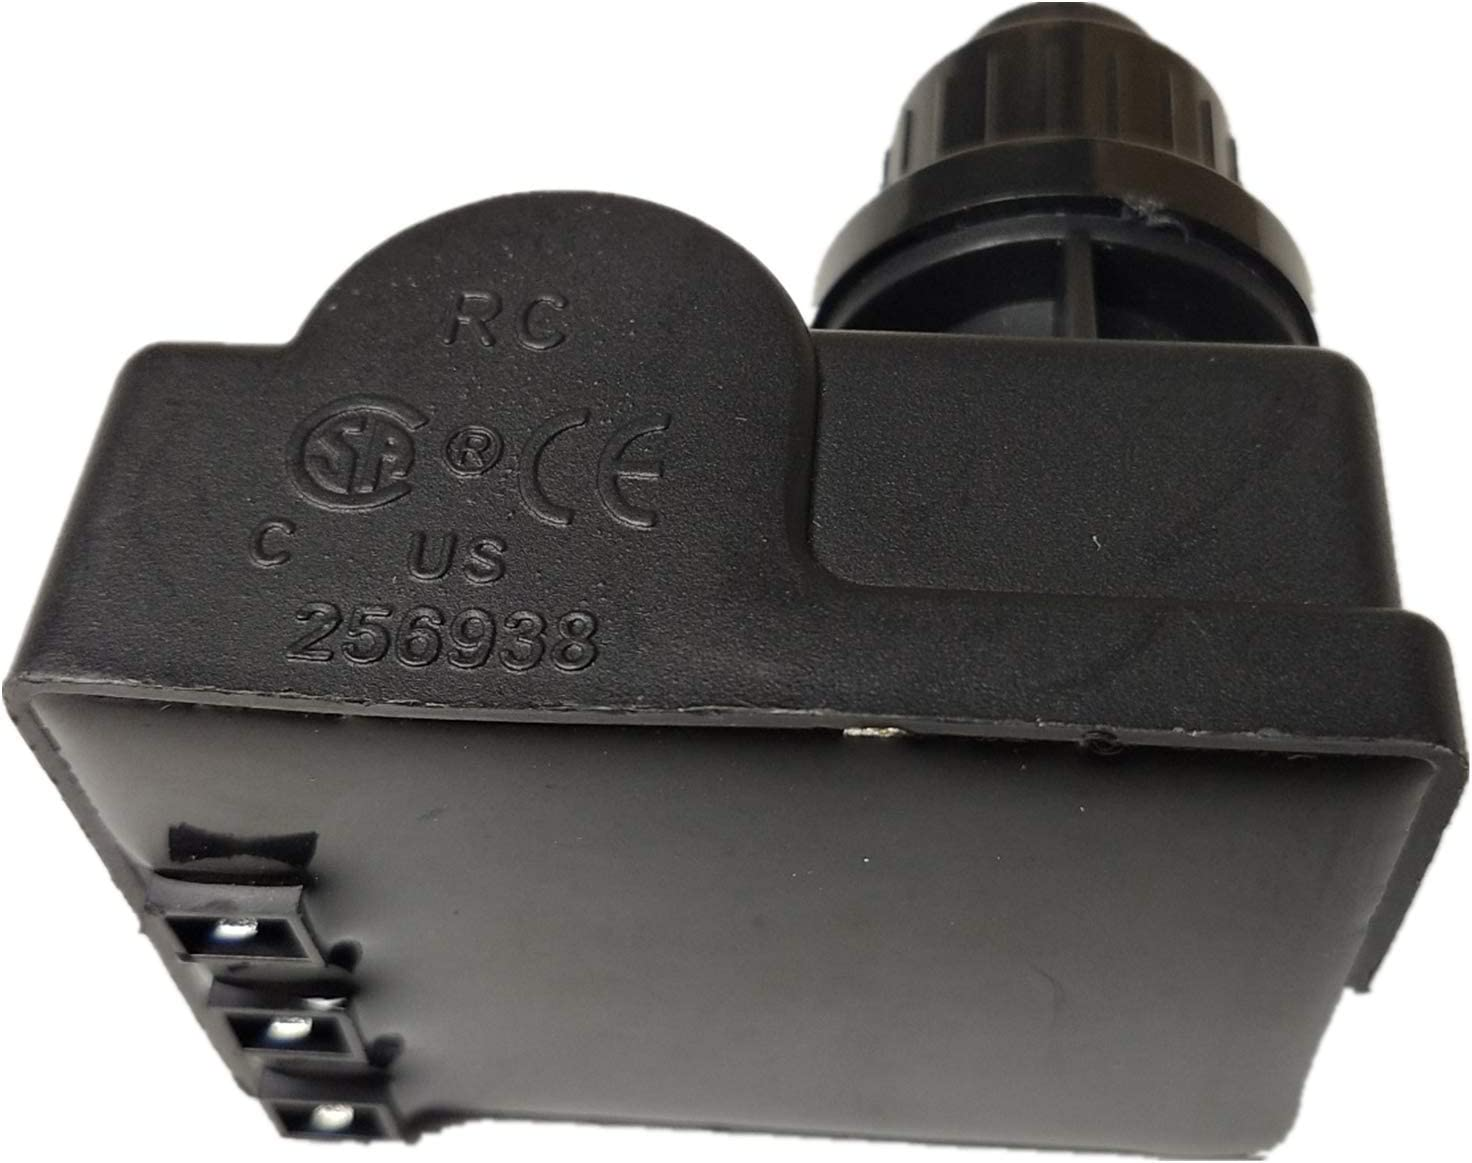 BBQ Gas Grill Spark Generator Push Button Ignitor Igniter 4 Outlet AA Battery